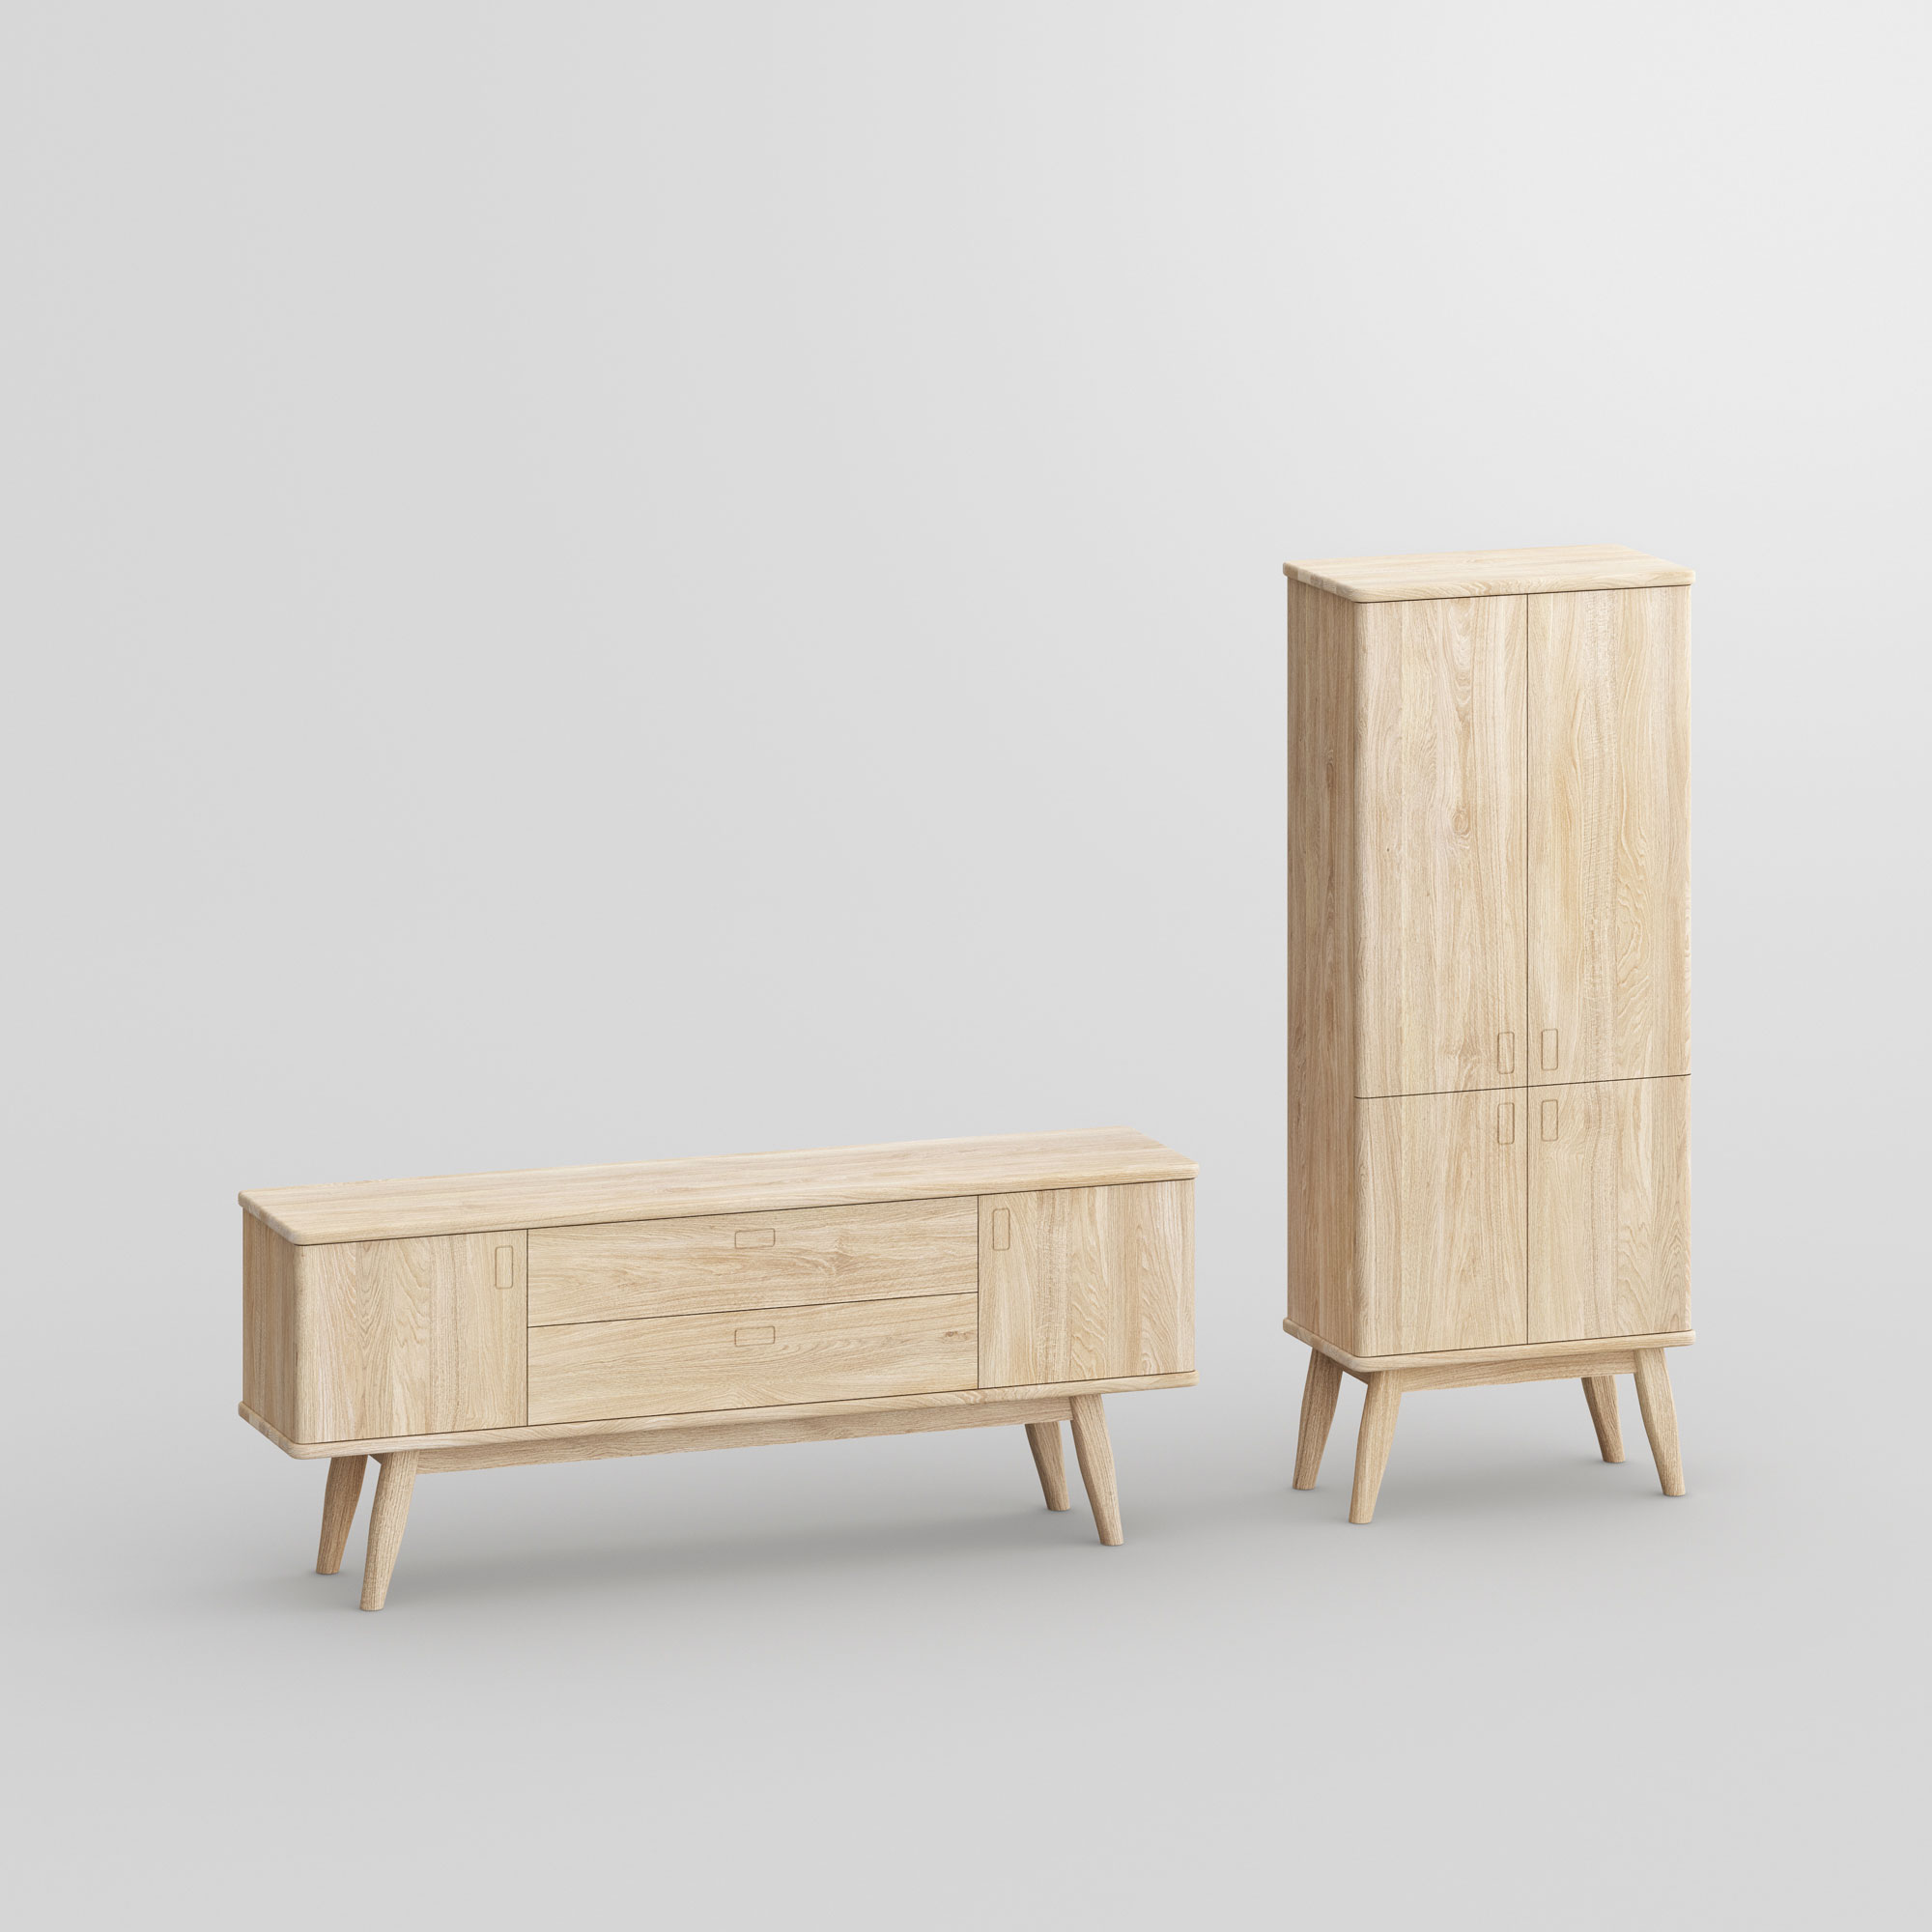 Solid Wood Cupboard Sideboard AETAS SPACE vitamin-design custom made in solid wood by vitamin design